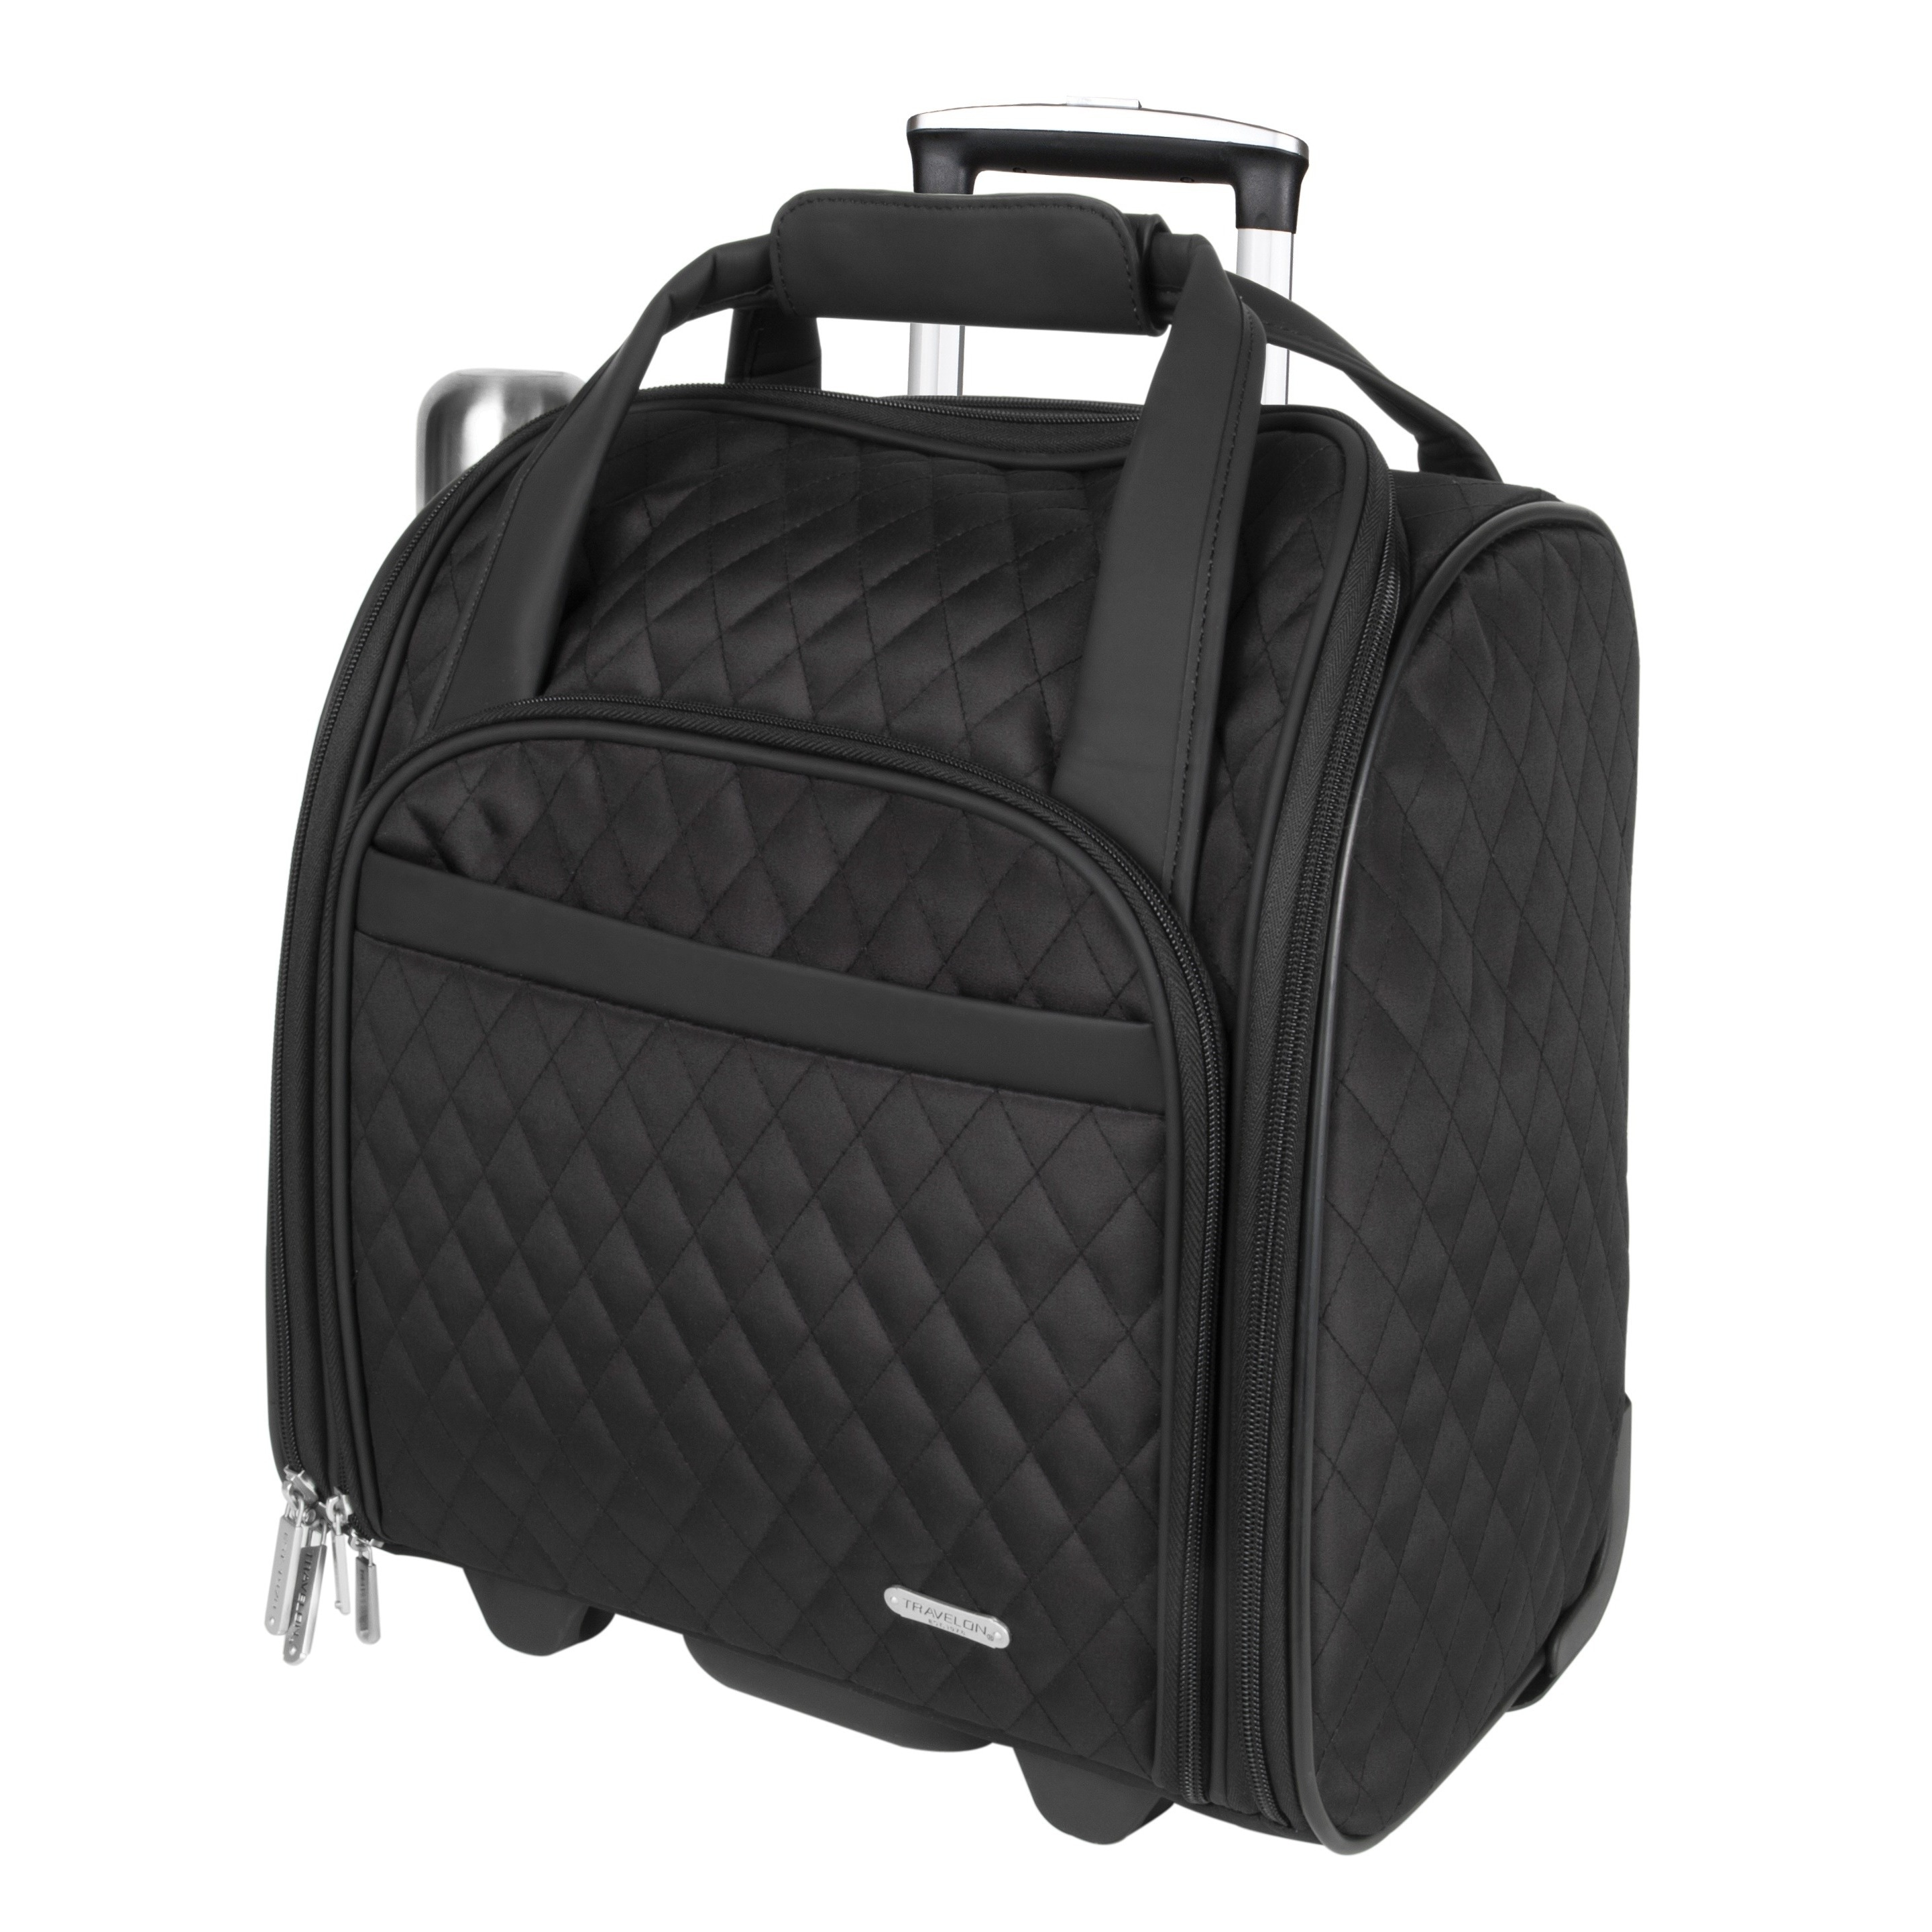 4d87efd3c99f Shop Travelon Wheeled Underseat Carry-on with Back-up Bag - Free Shipping  Today - Overstock - 3958054